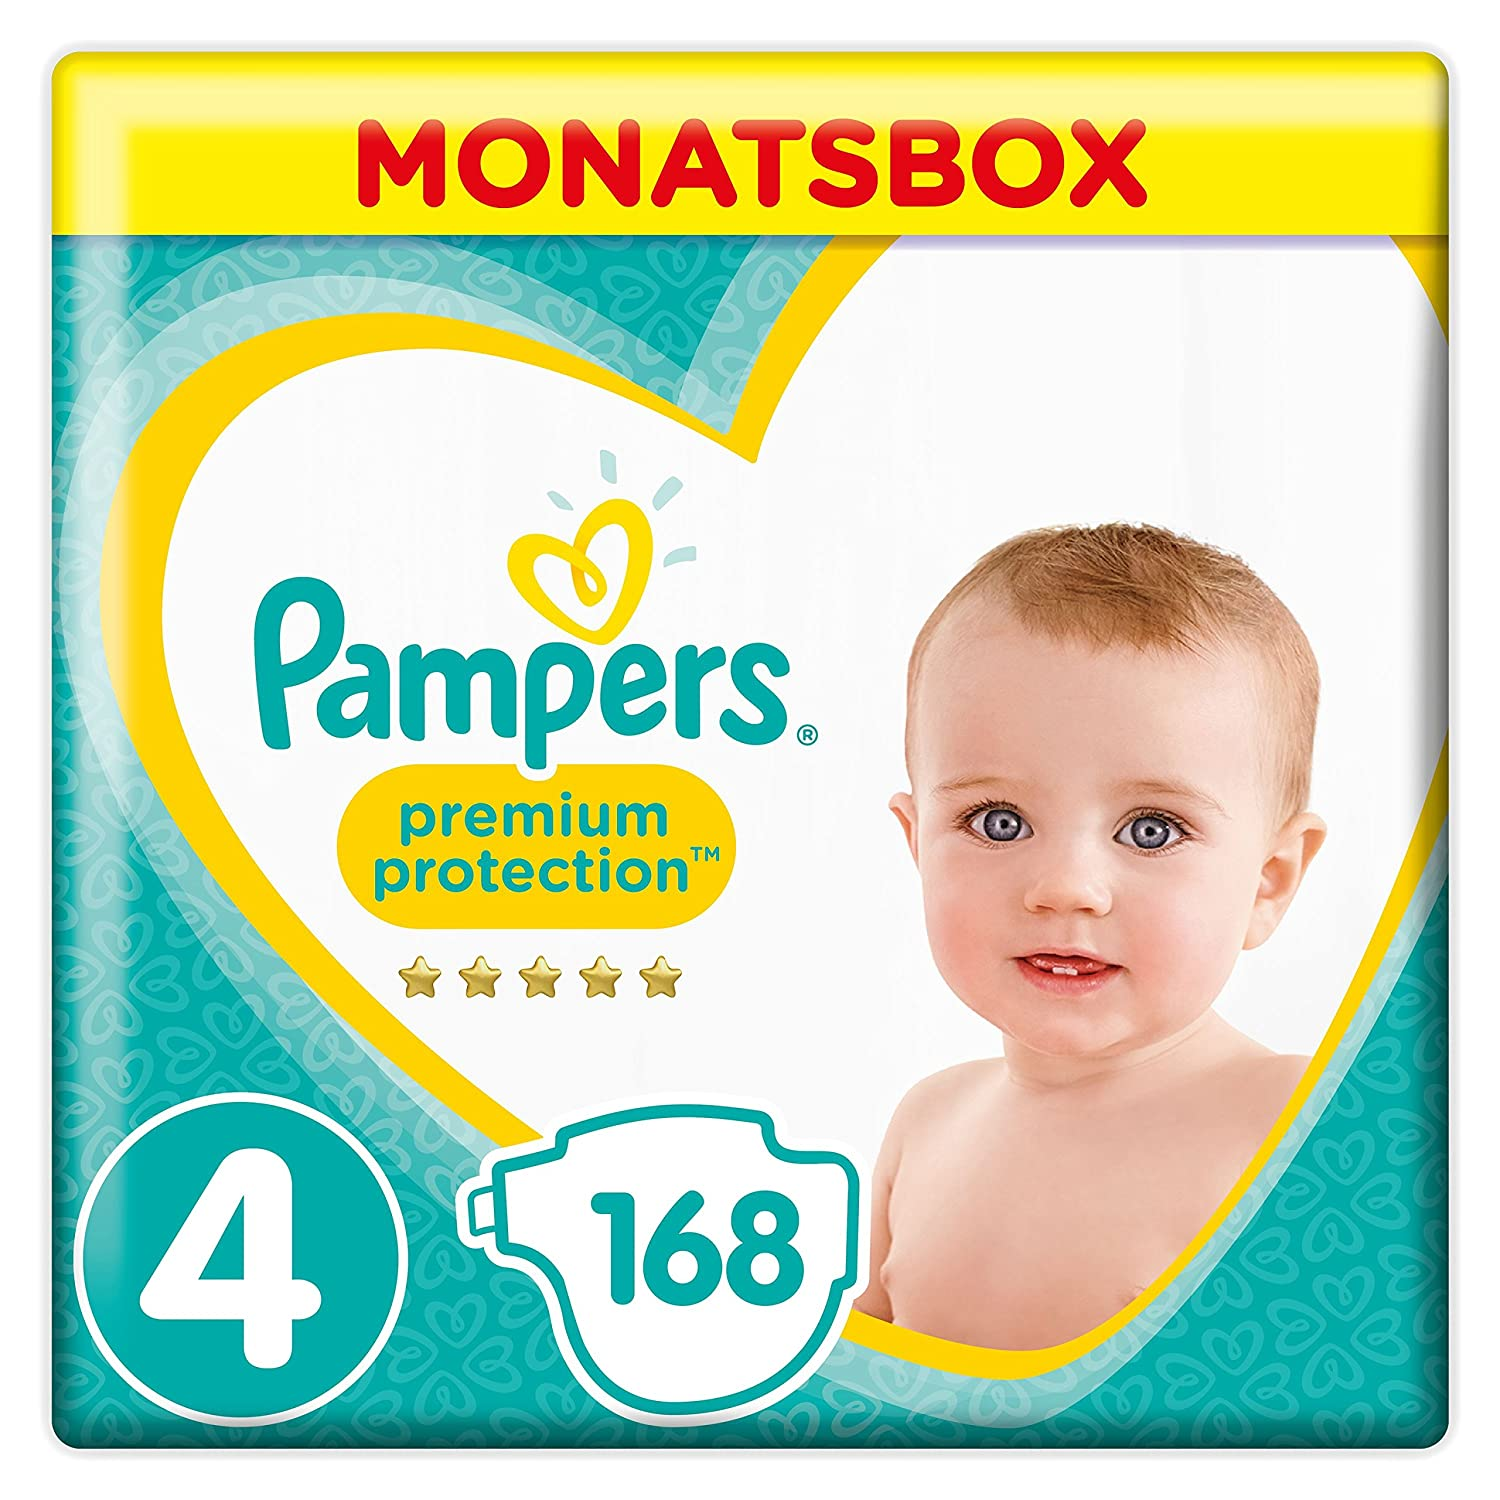 Pampers Premium Protection New Baby Windeln, Gr. 1, 2-5kg, Halbmonatsbox, 1er Pack (1 x 96 Stück) 1er Pack (1 x 96 Stück) Procter and Gamble 108827931